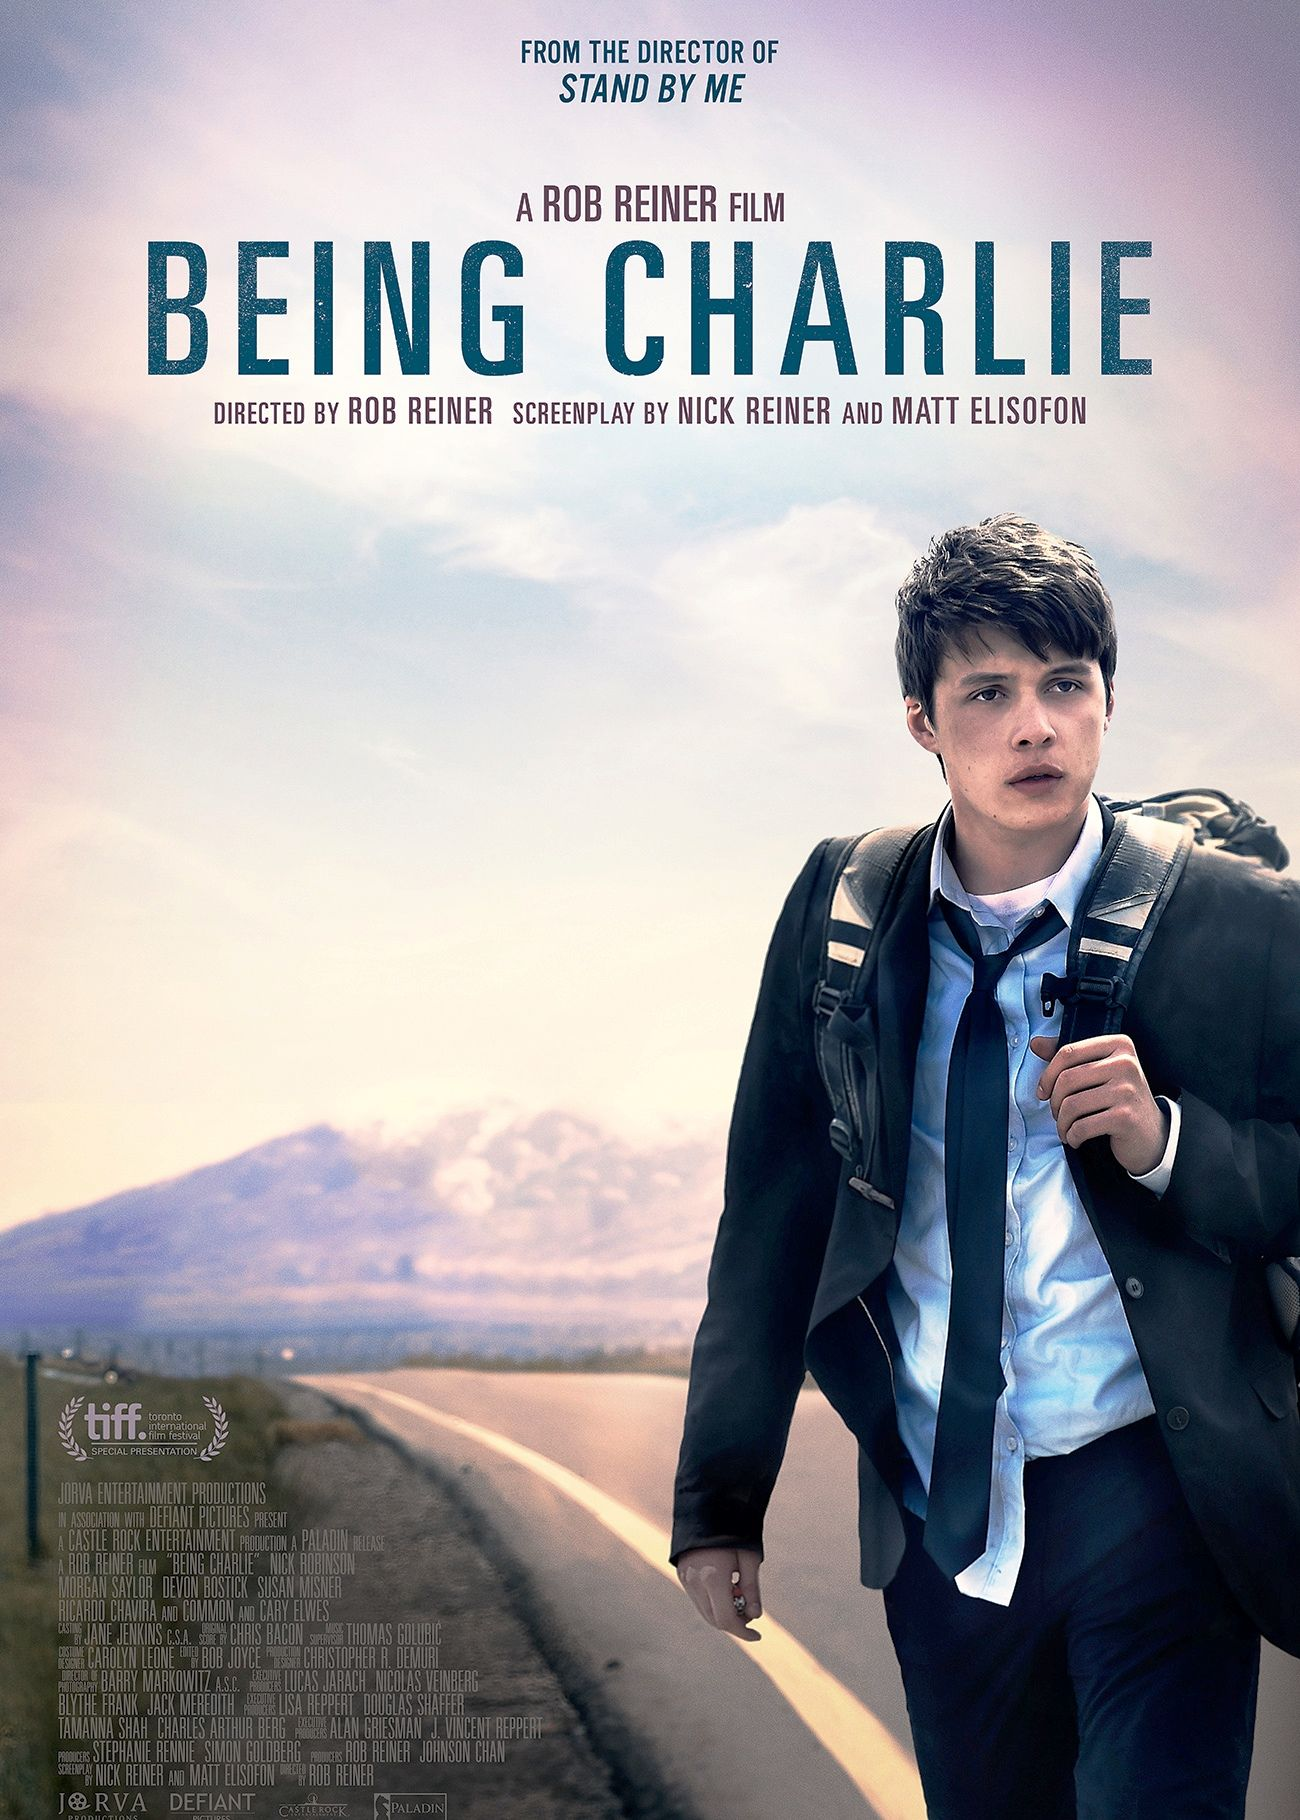 Being Charlie Movie Poster 2015 This Film About A Teenage Drug Addict Made Its Premiere At The Toronto Inter Streaming Movies Nick Robinson English Movies